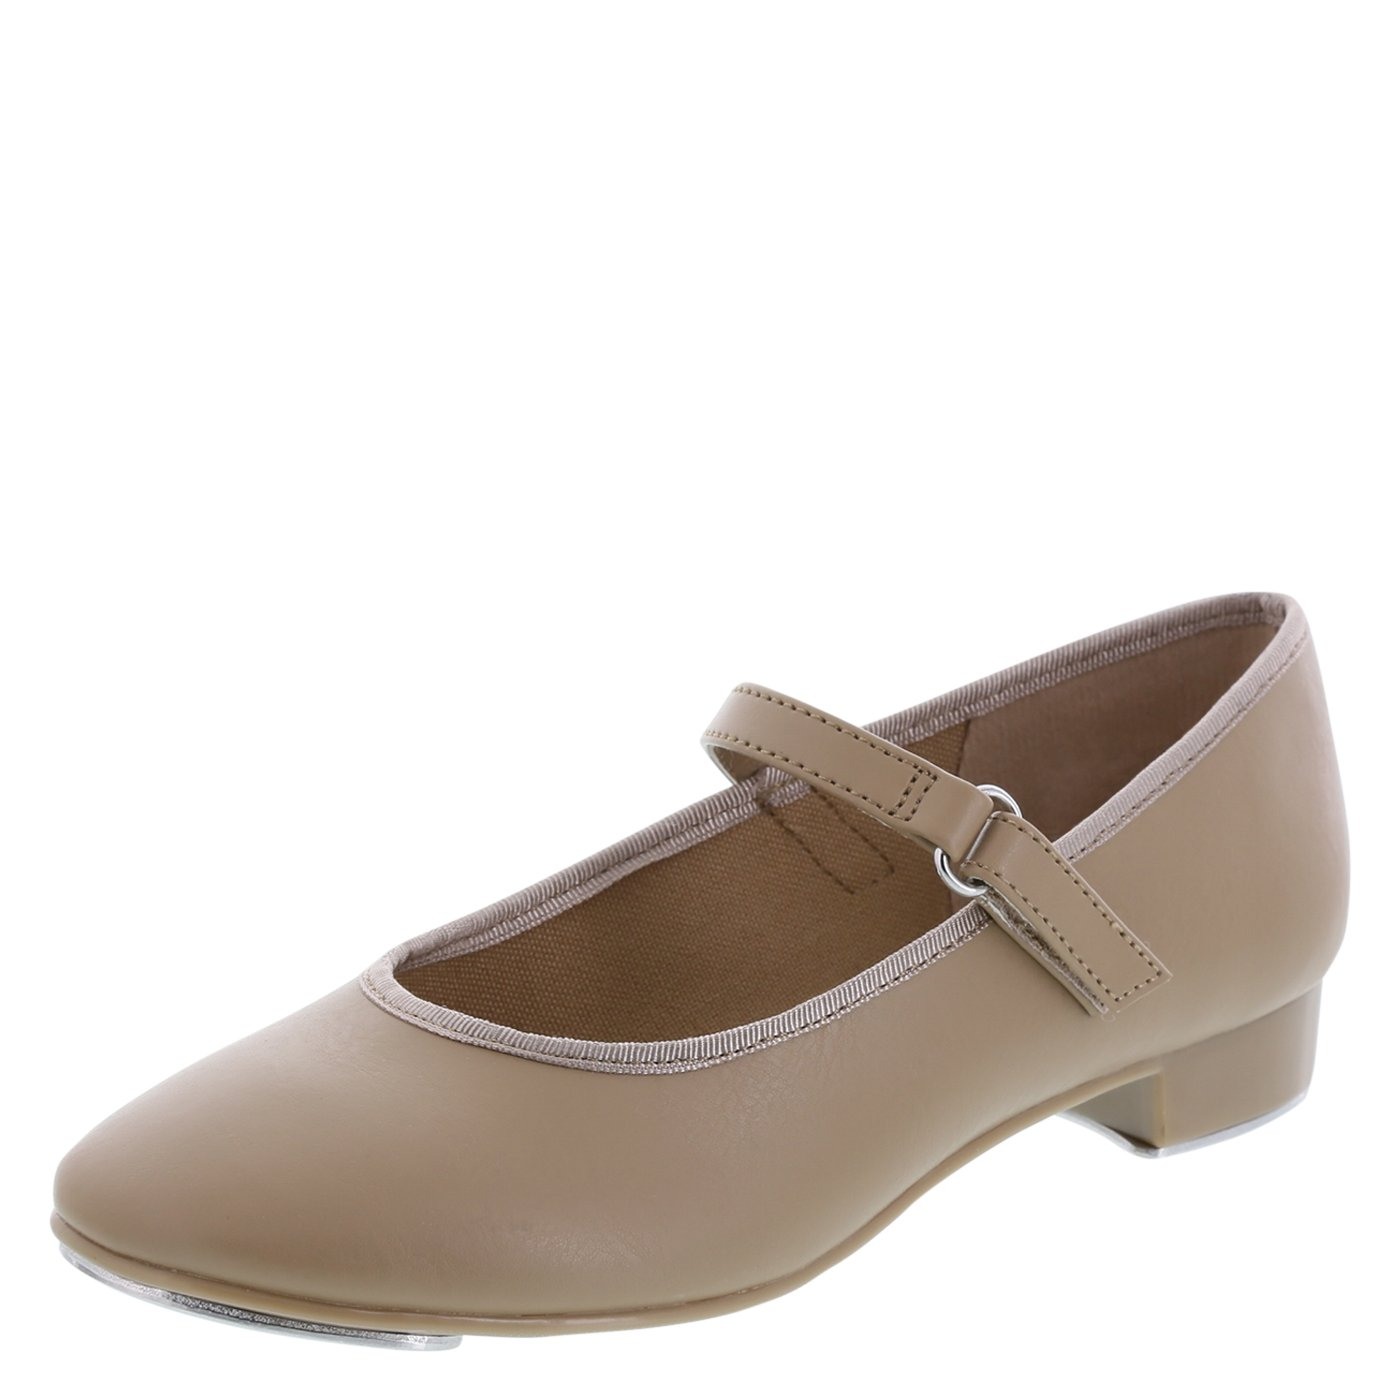 American Ballet Theatre For Spotlights Girls' Mary Jane Tap Shoe Tan 8